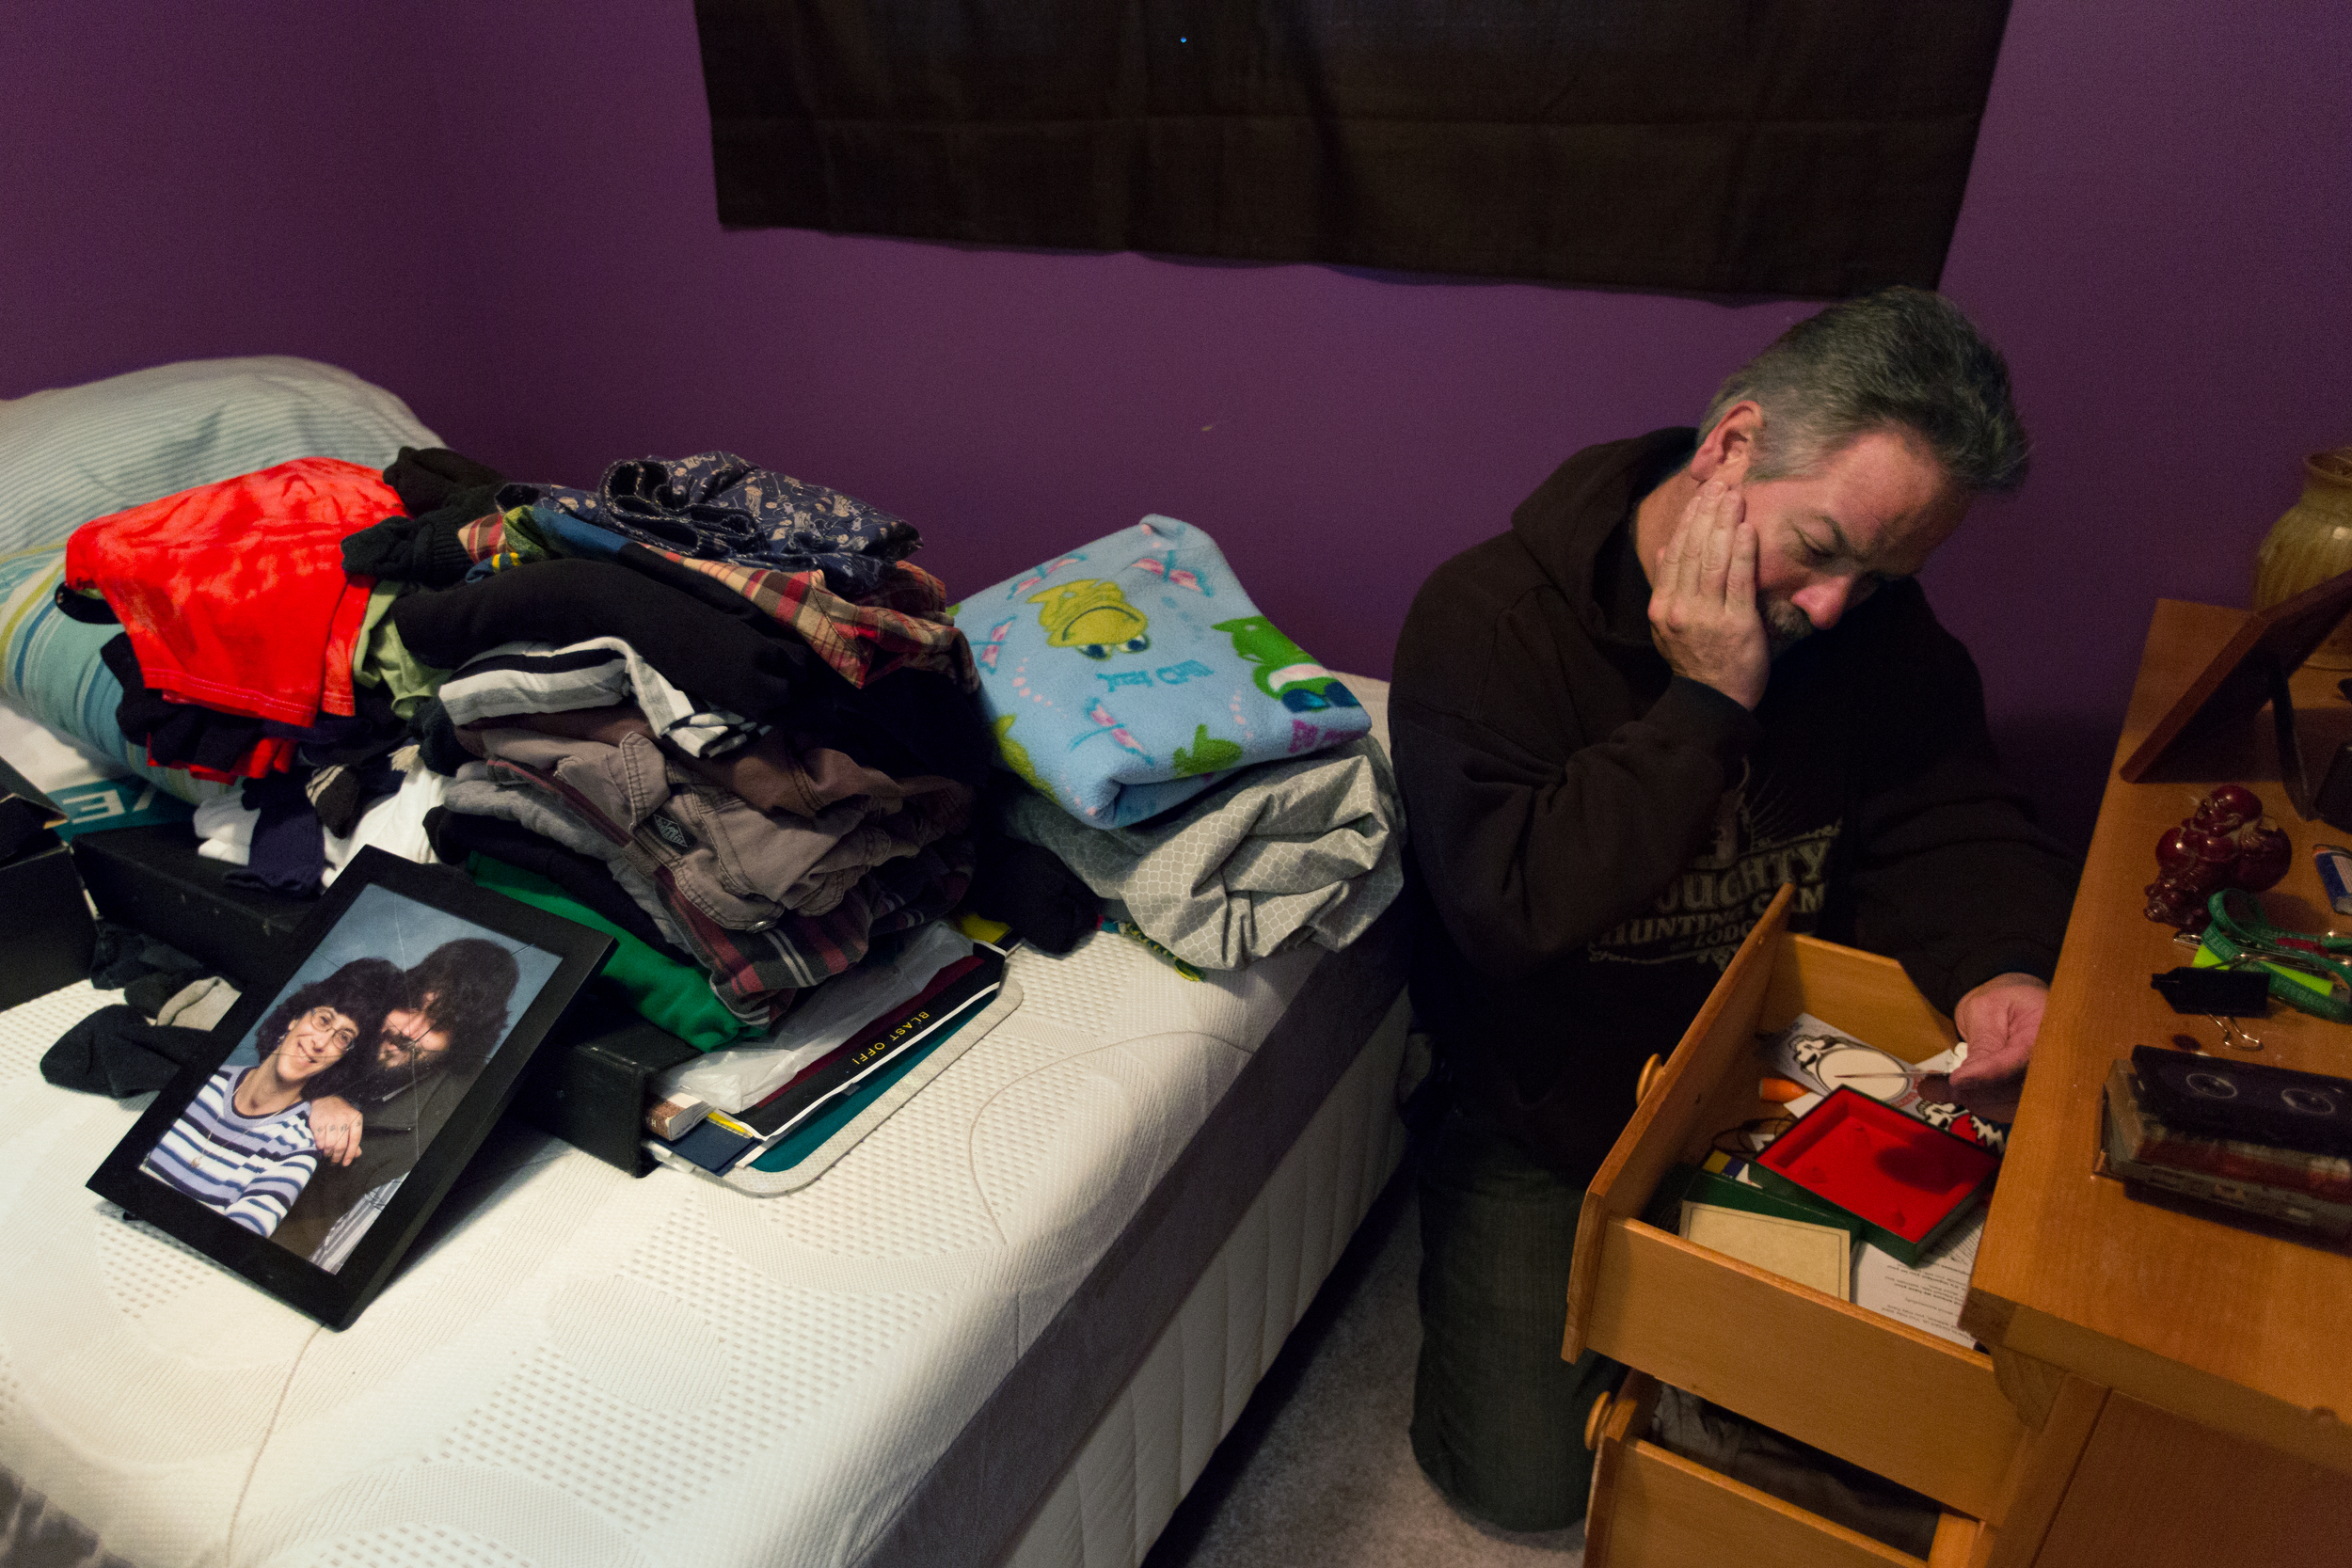 "Ron Doughty goes through Paul Doughty's dresser, finding heroin wrappers, needles, and q-tips on Nov. 17, 2015 in Brighton, N.Y. ""I am not ashamed of my son, he just had a disease,"" said Ron. Paul died of a heroin overdose on Nov. 12, 2015."